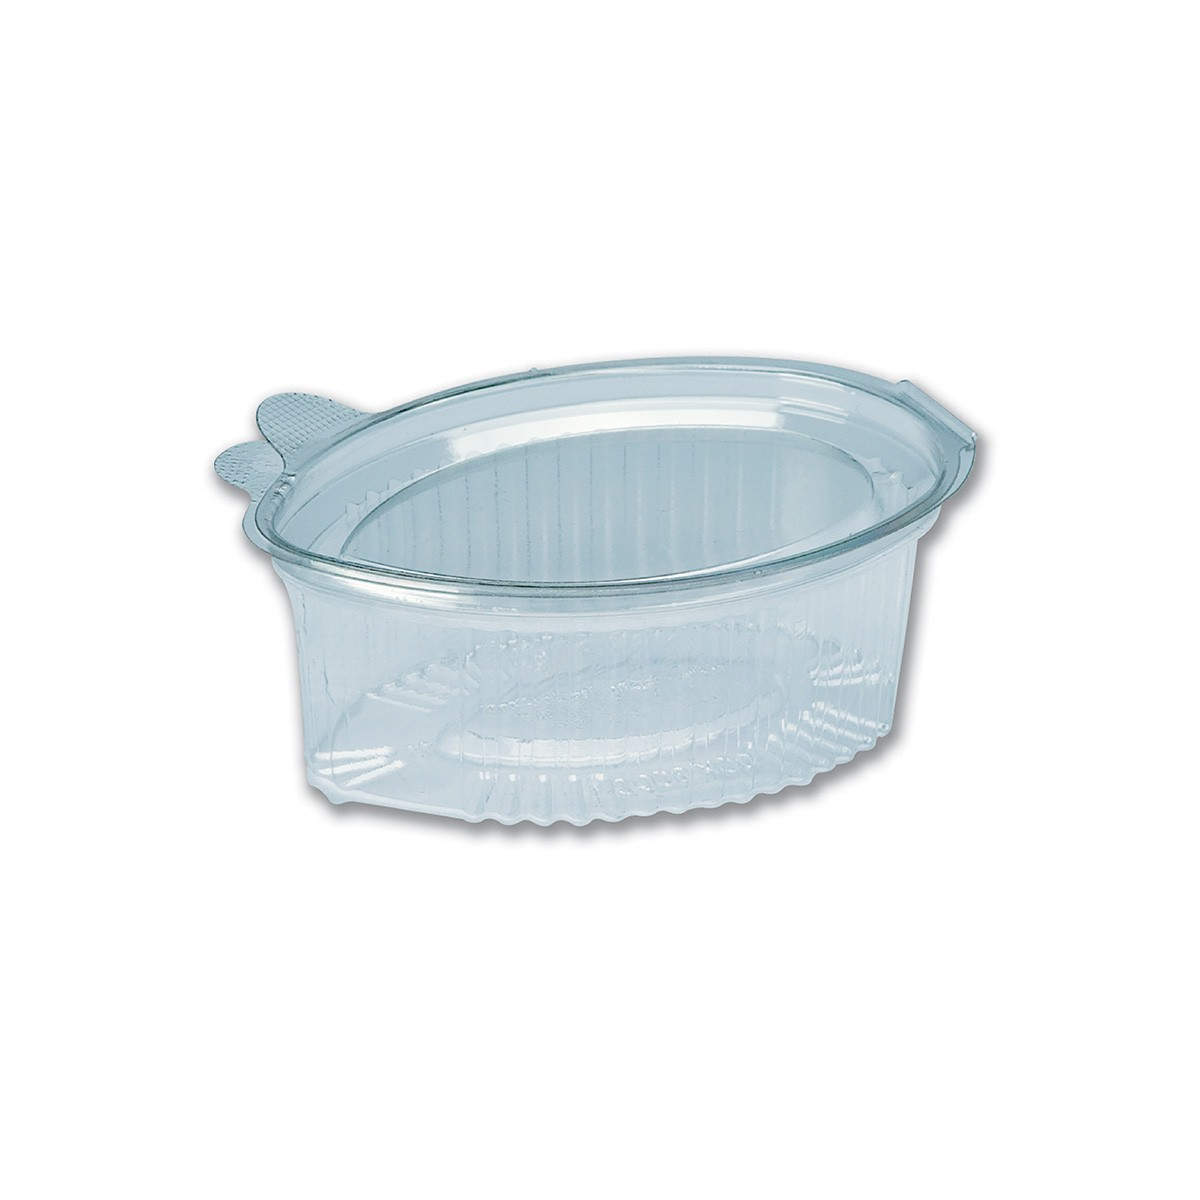 Tinypac Clear Leaf-Shaped Portion Cup w/ Lid 100cc | 1000pcs